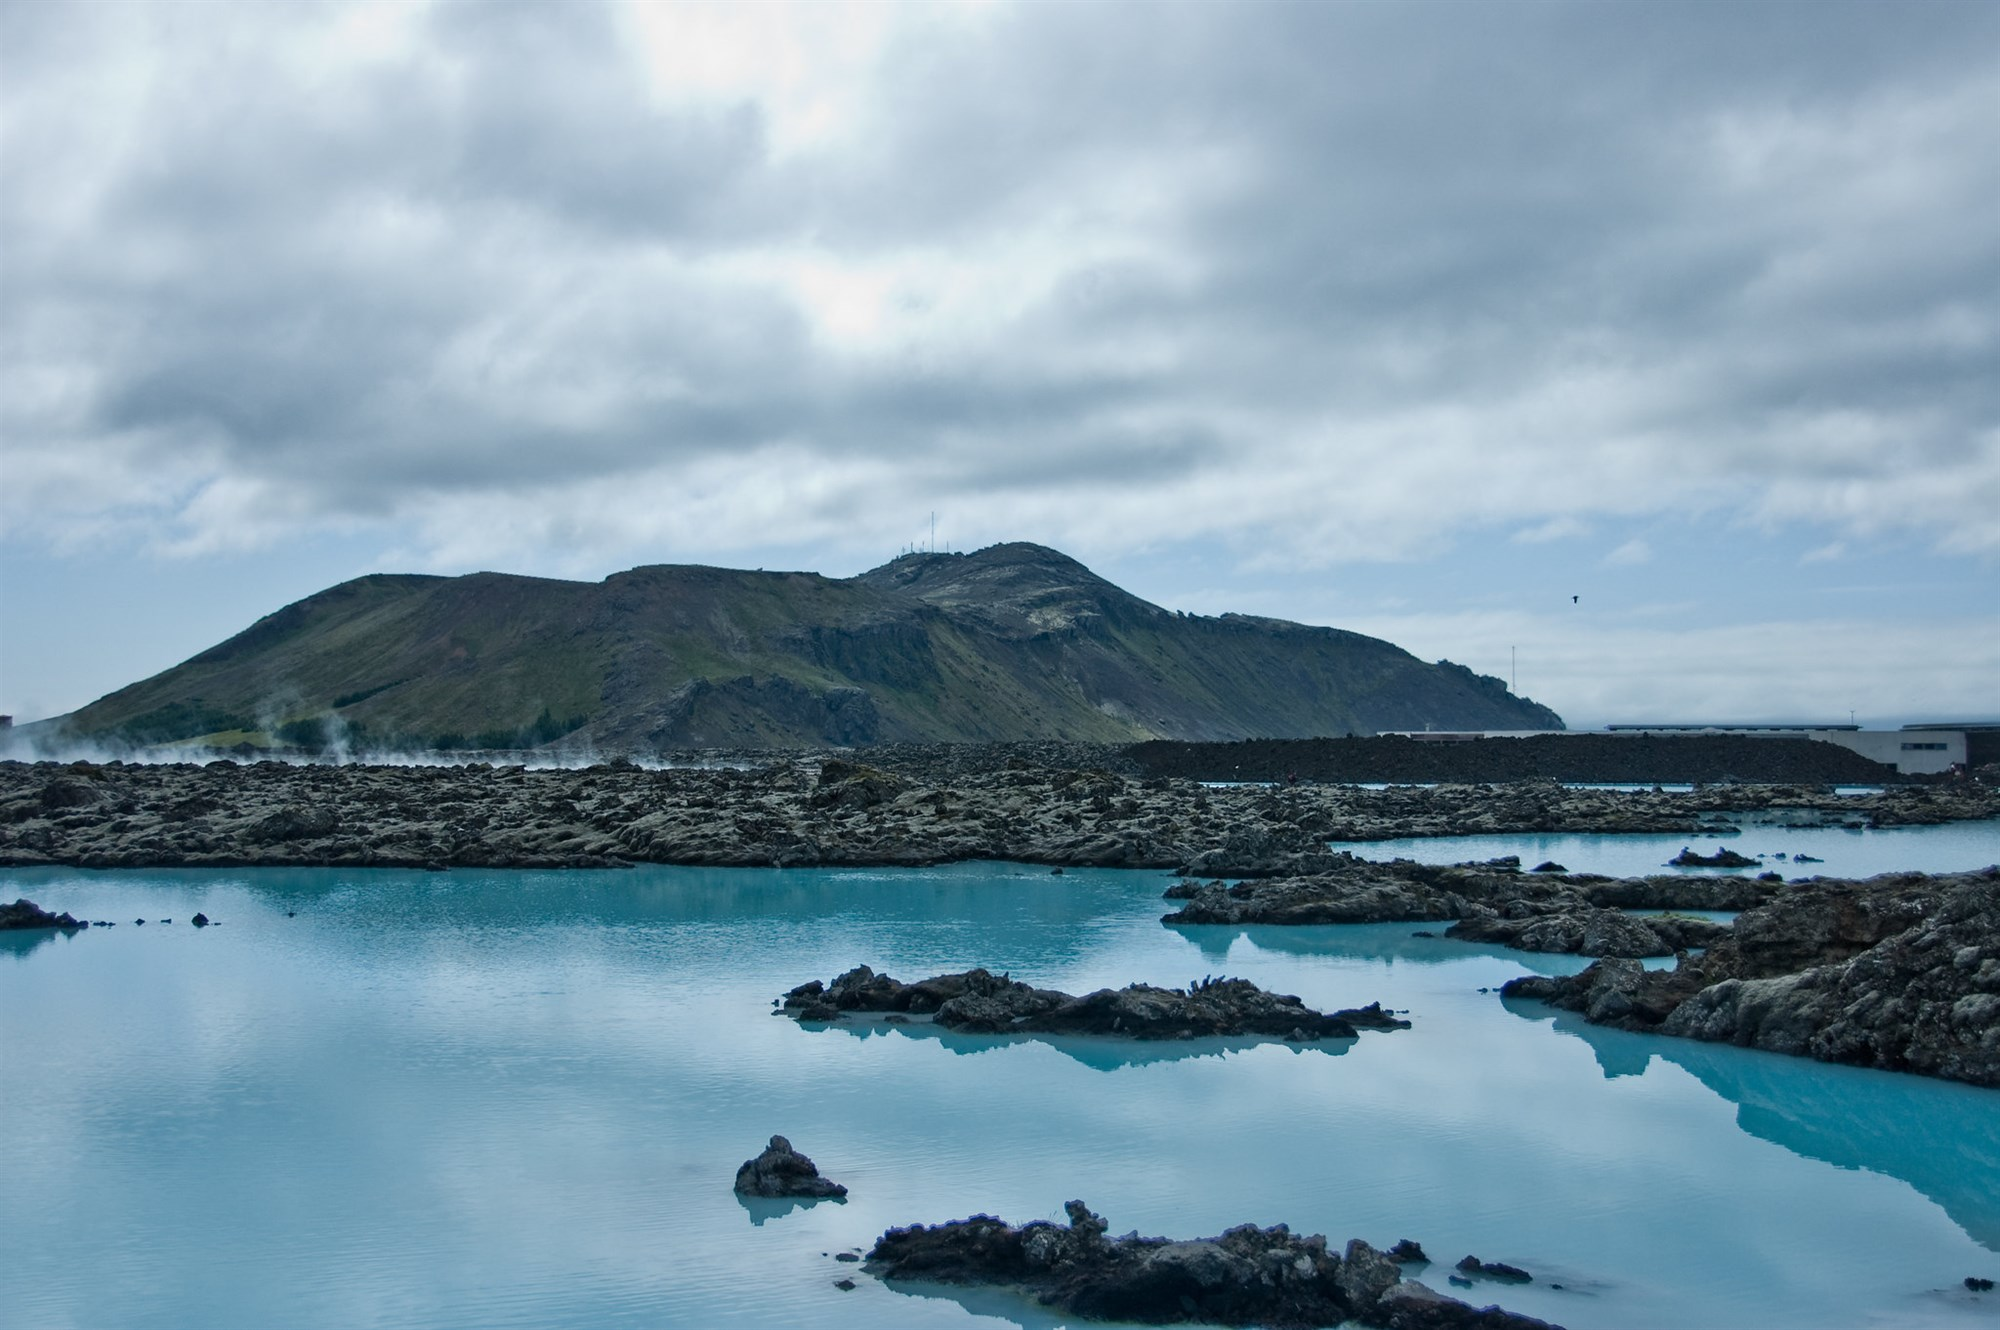 Blue Lagoon in Iceland with mountains on the background